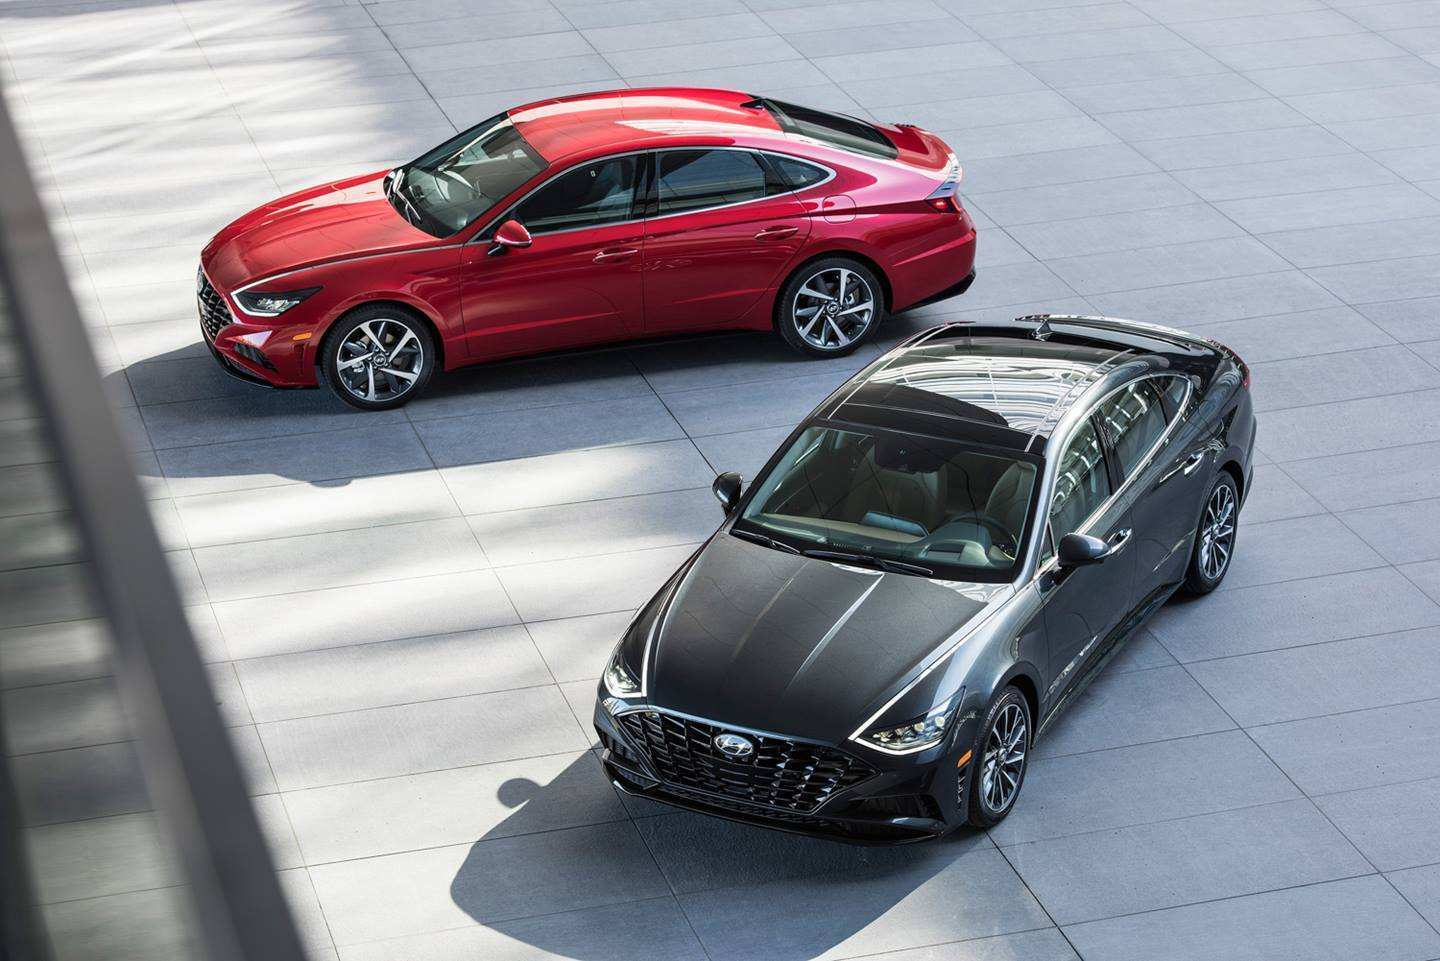 58 Best 2020 Hyundai Sonata Engine Options Rumors